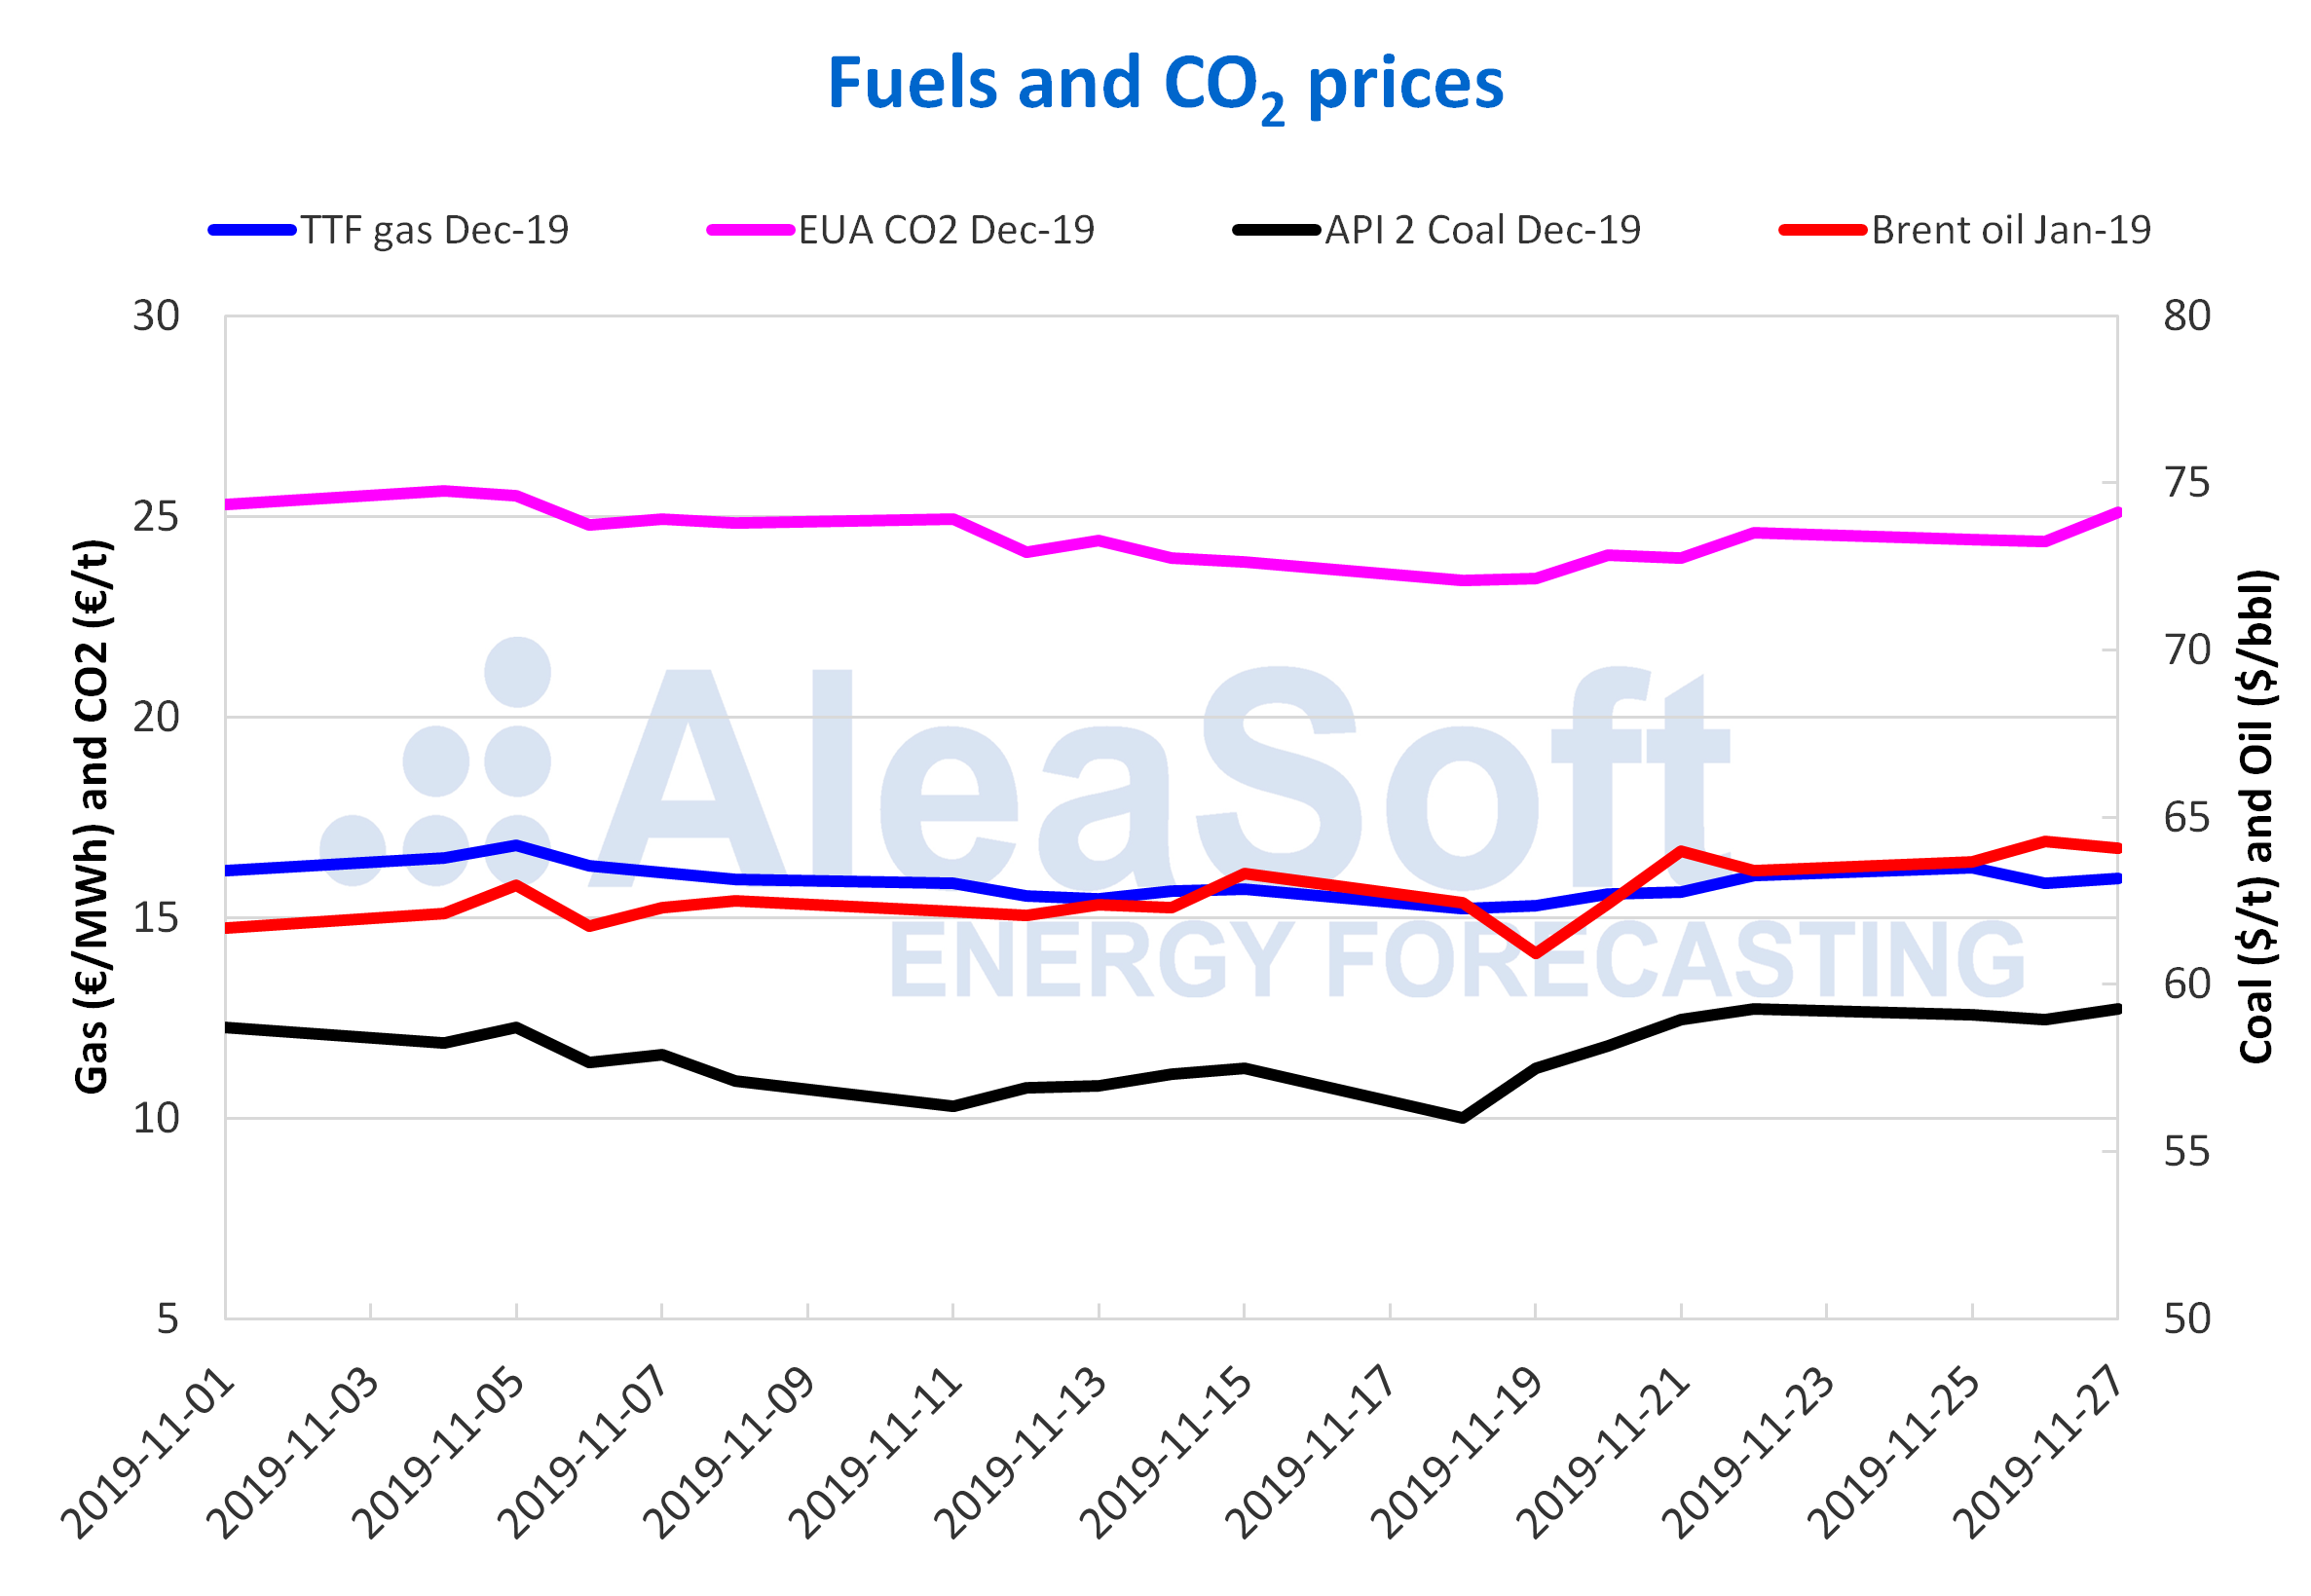 AleaSoft - Fuels and CO2 prices